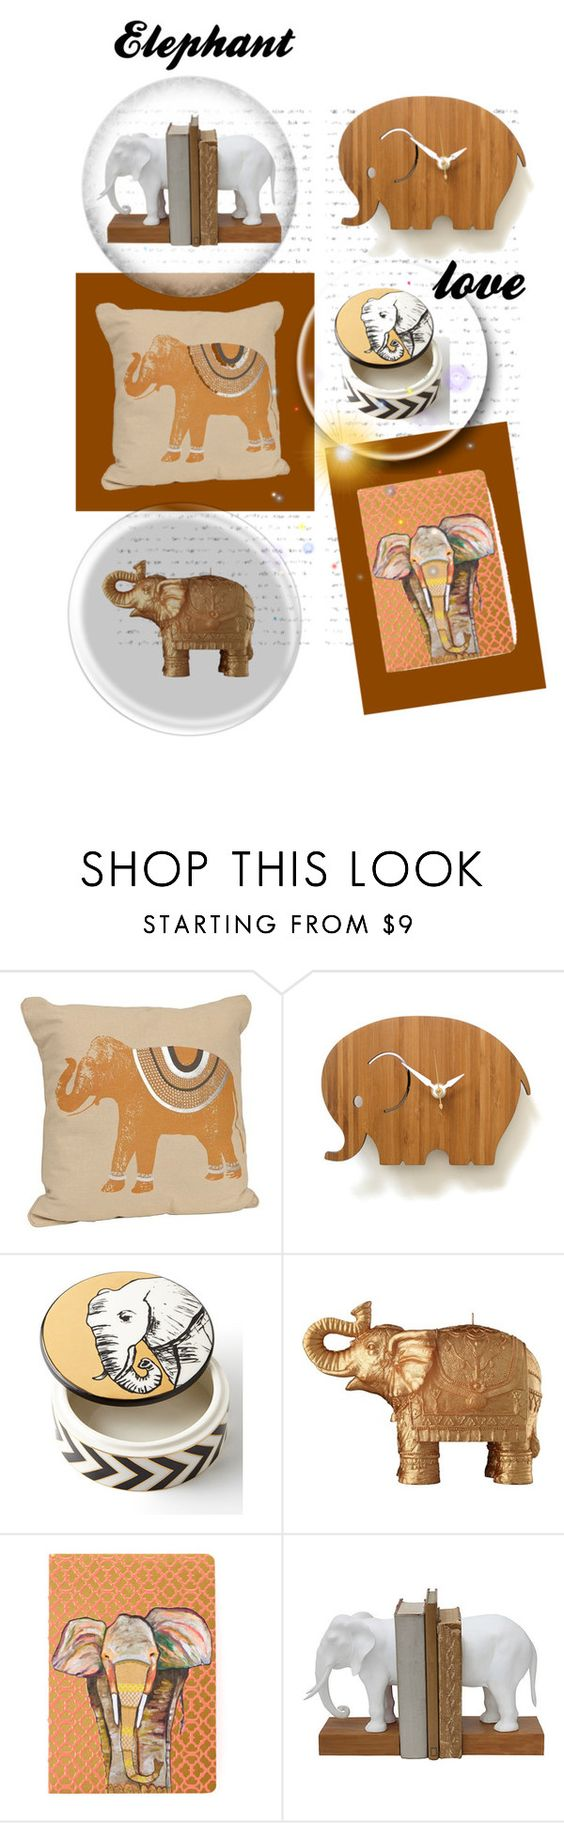 """Elephant love"" by wendycecille ❤ liked on Polyvore featuring interior, interiors, interior design, home, home decor, interior decorating, Decoylab, Jonathan Adler and Mario Luca Giusti"